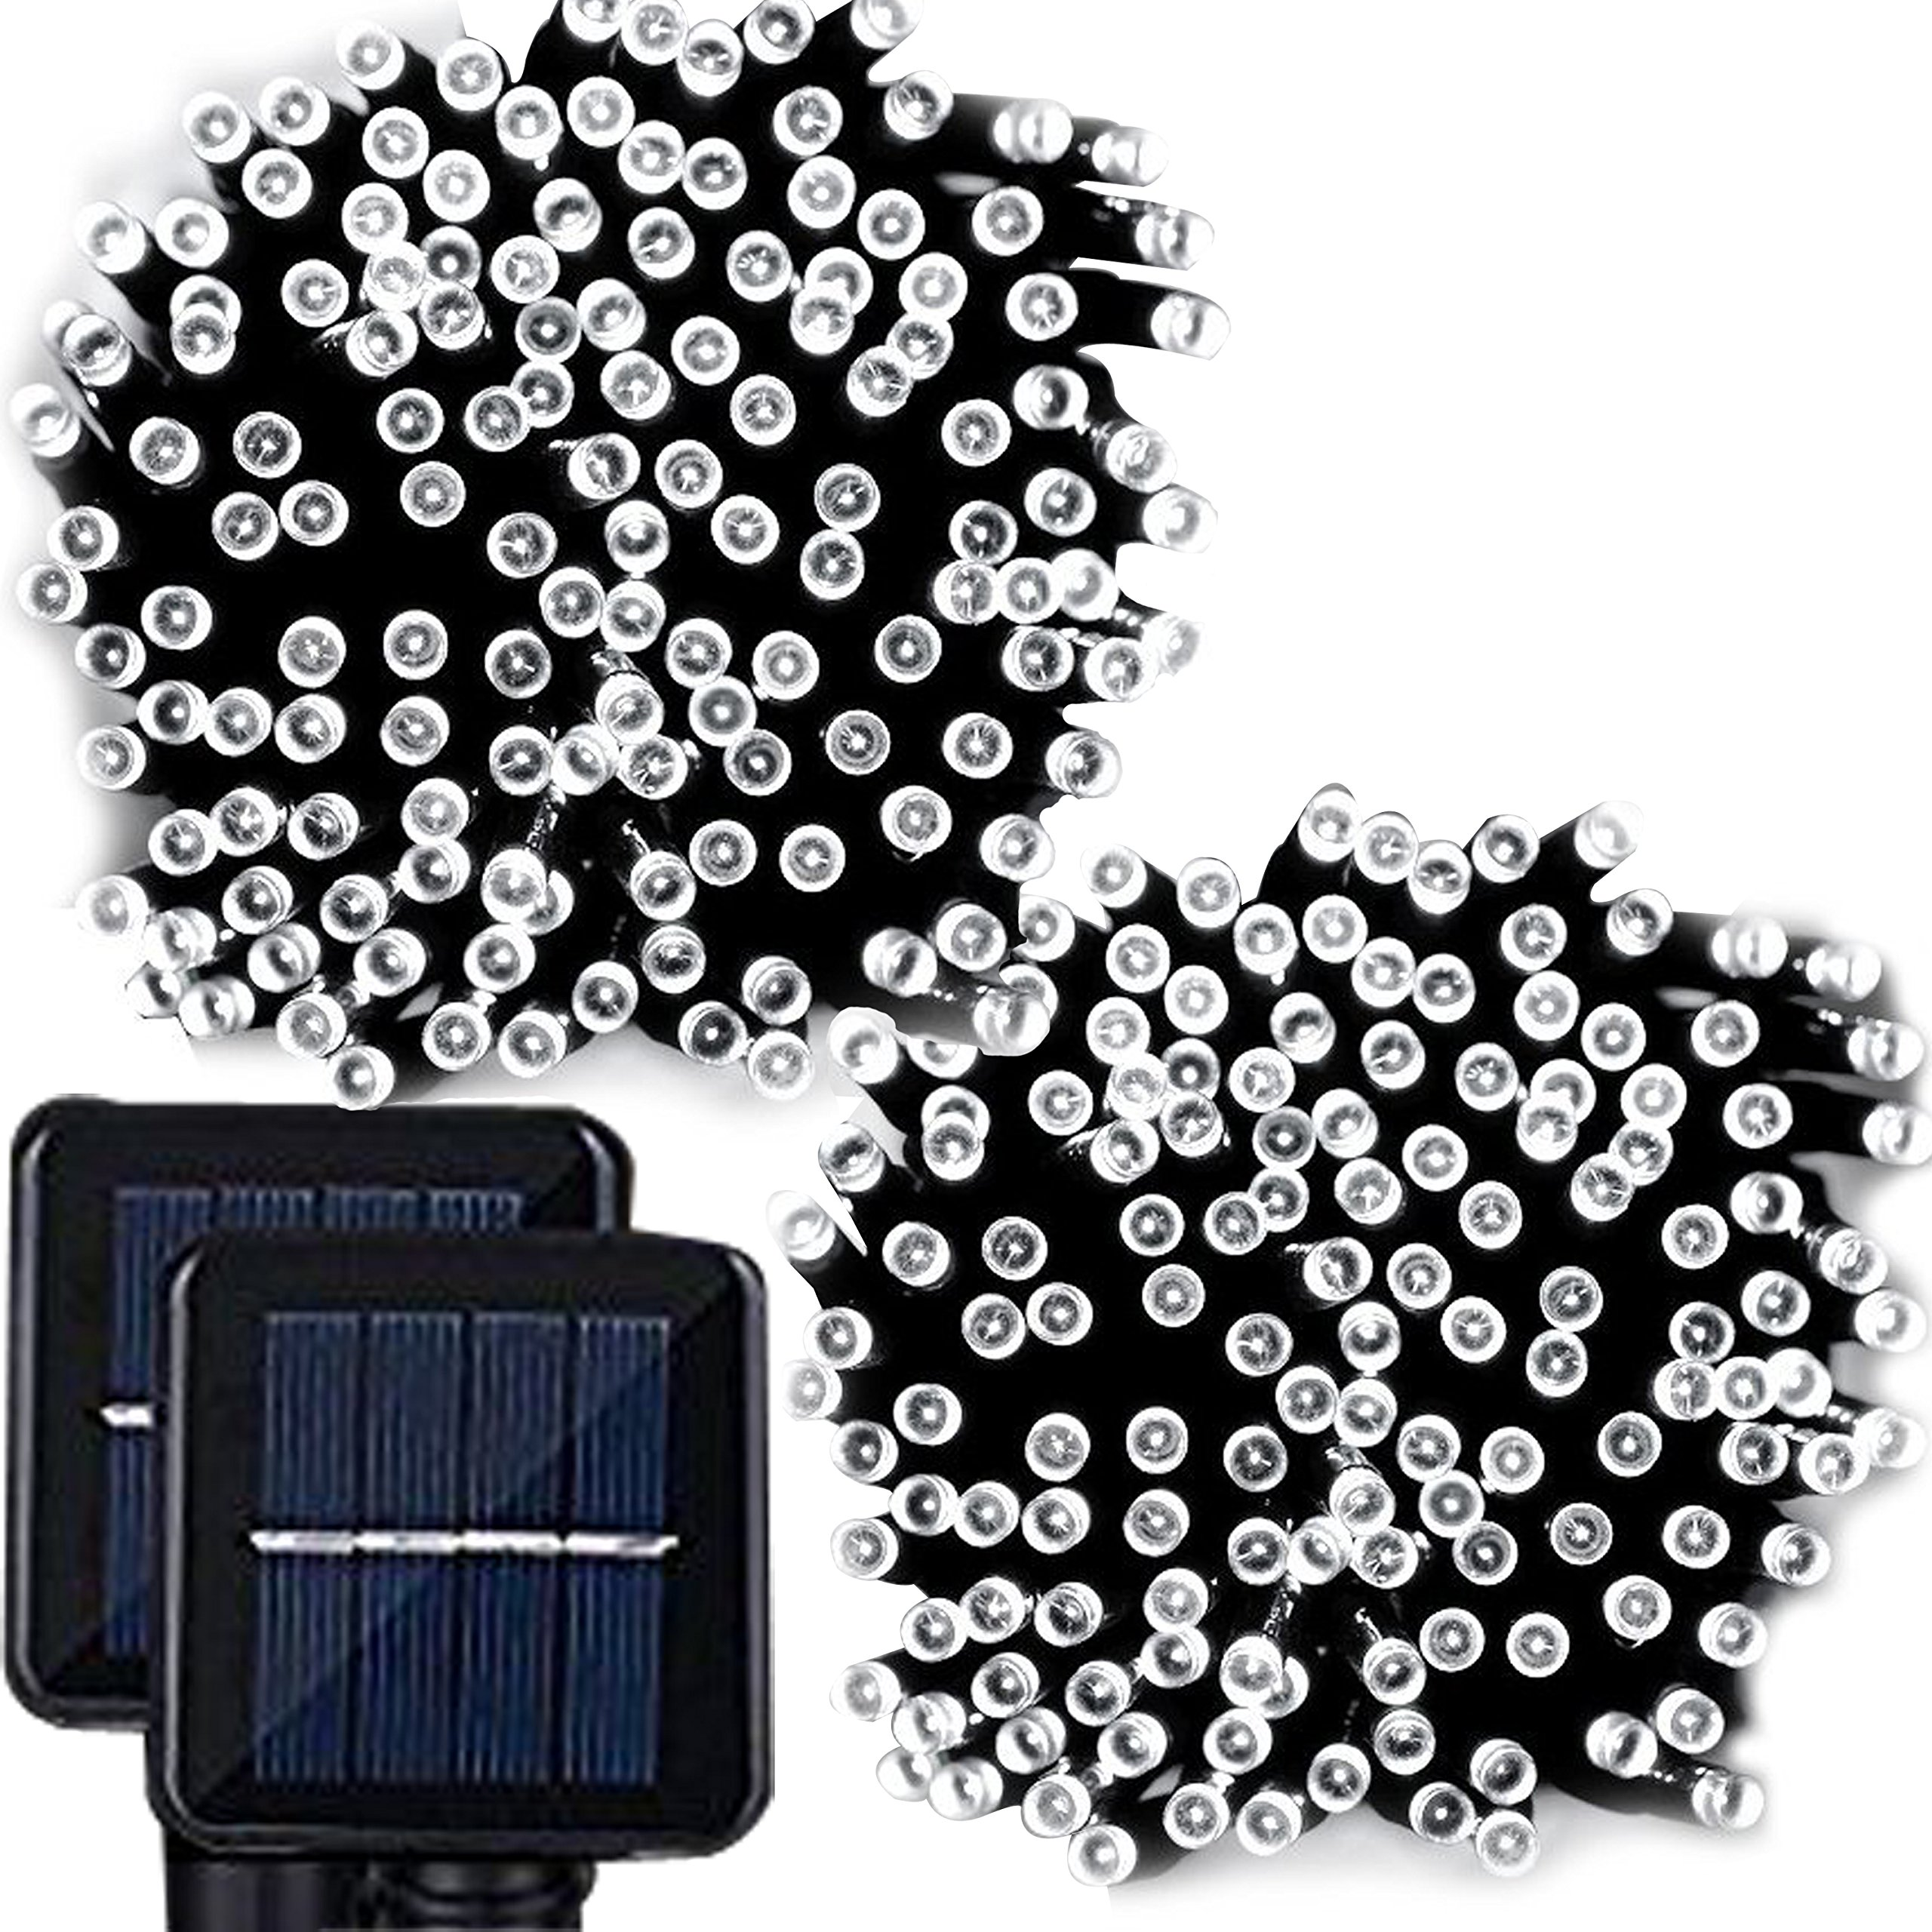 Lemontec 200 Led String Lighting Outdoor Solar 2-Pack Auto On/Off